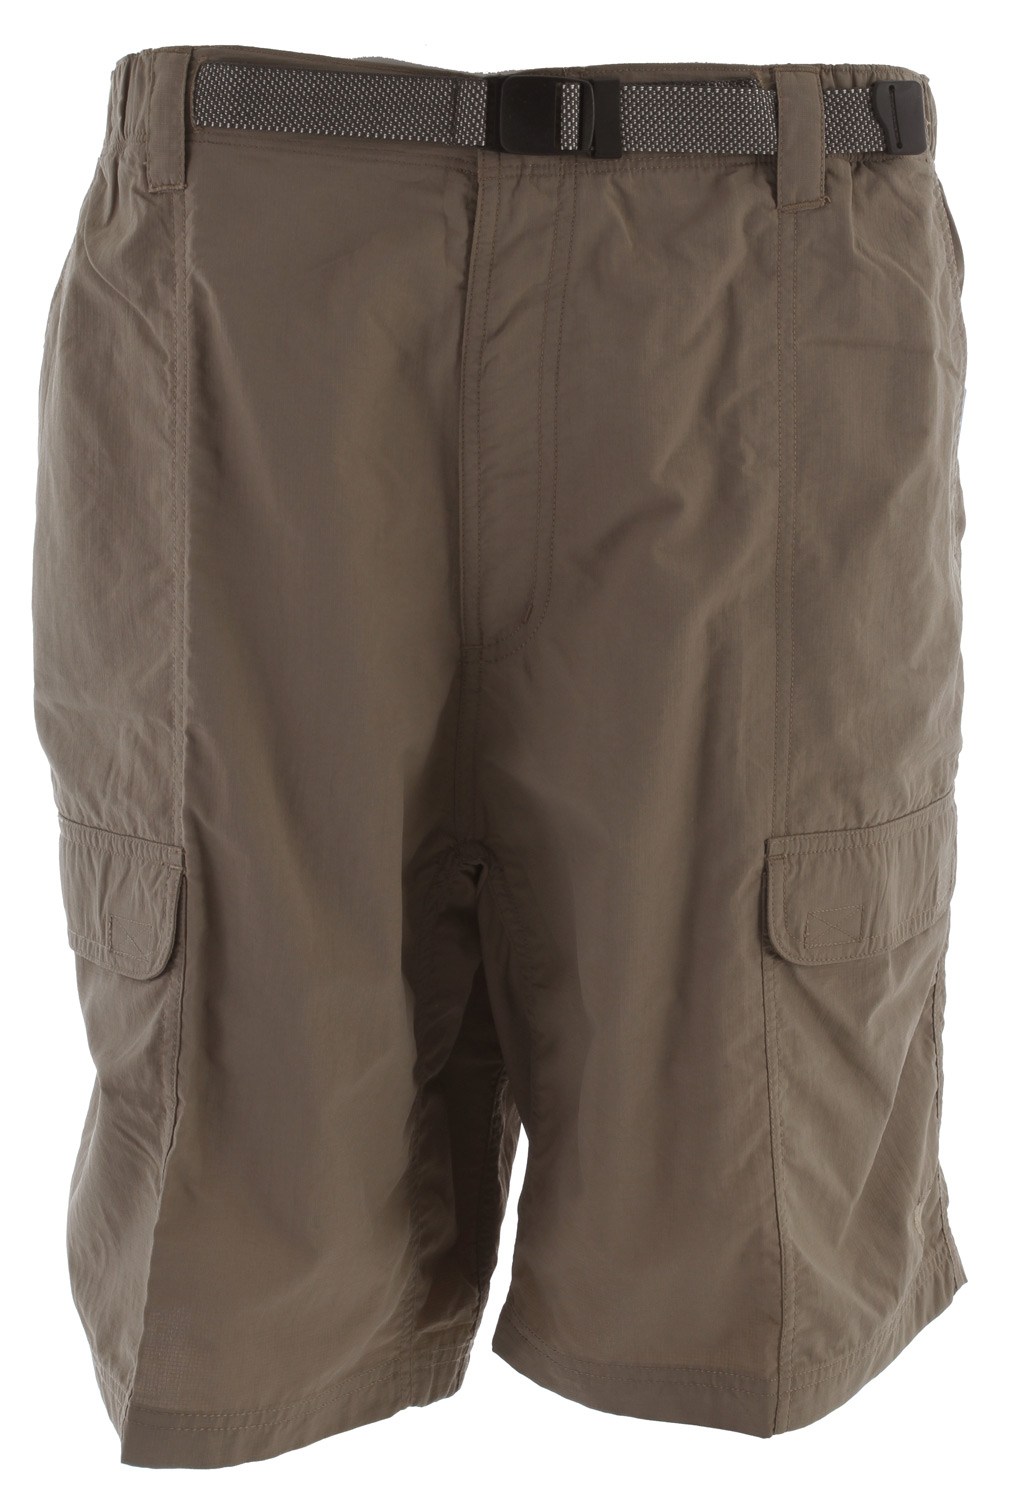 "Camp and Hike Throw on the Safari Short for your summer camping trips or fall day hikes. This versatile short is perfect for any season's activities. The lightweight fabric dries quickly, should you get wet.Key Features of the White Sierra Safari 10.5"" Shorts: 100% nylon rip stop woven UPF 30 Quick dry Velcro secure front and back pockets Gusseted crotch Jacquard belt Inseam: 8.5"" & 10.5"" - $31.95"